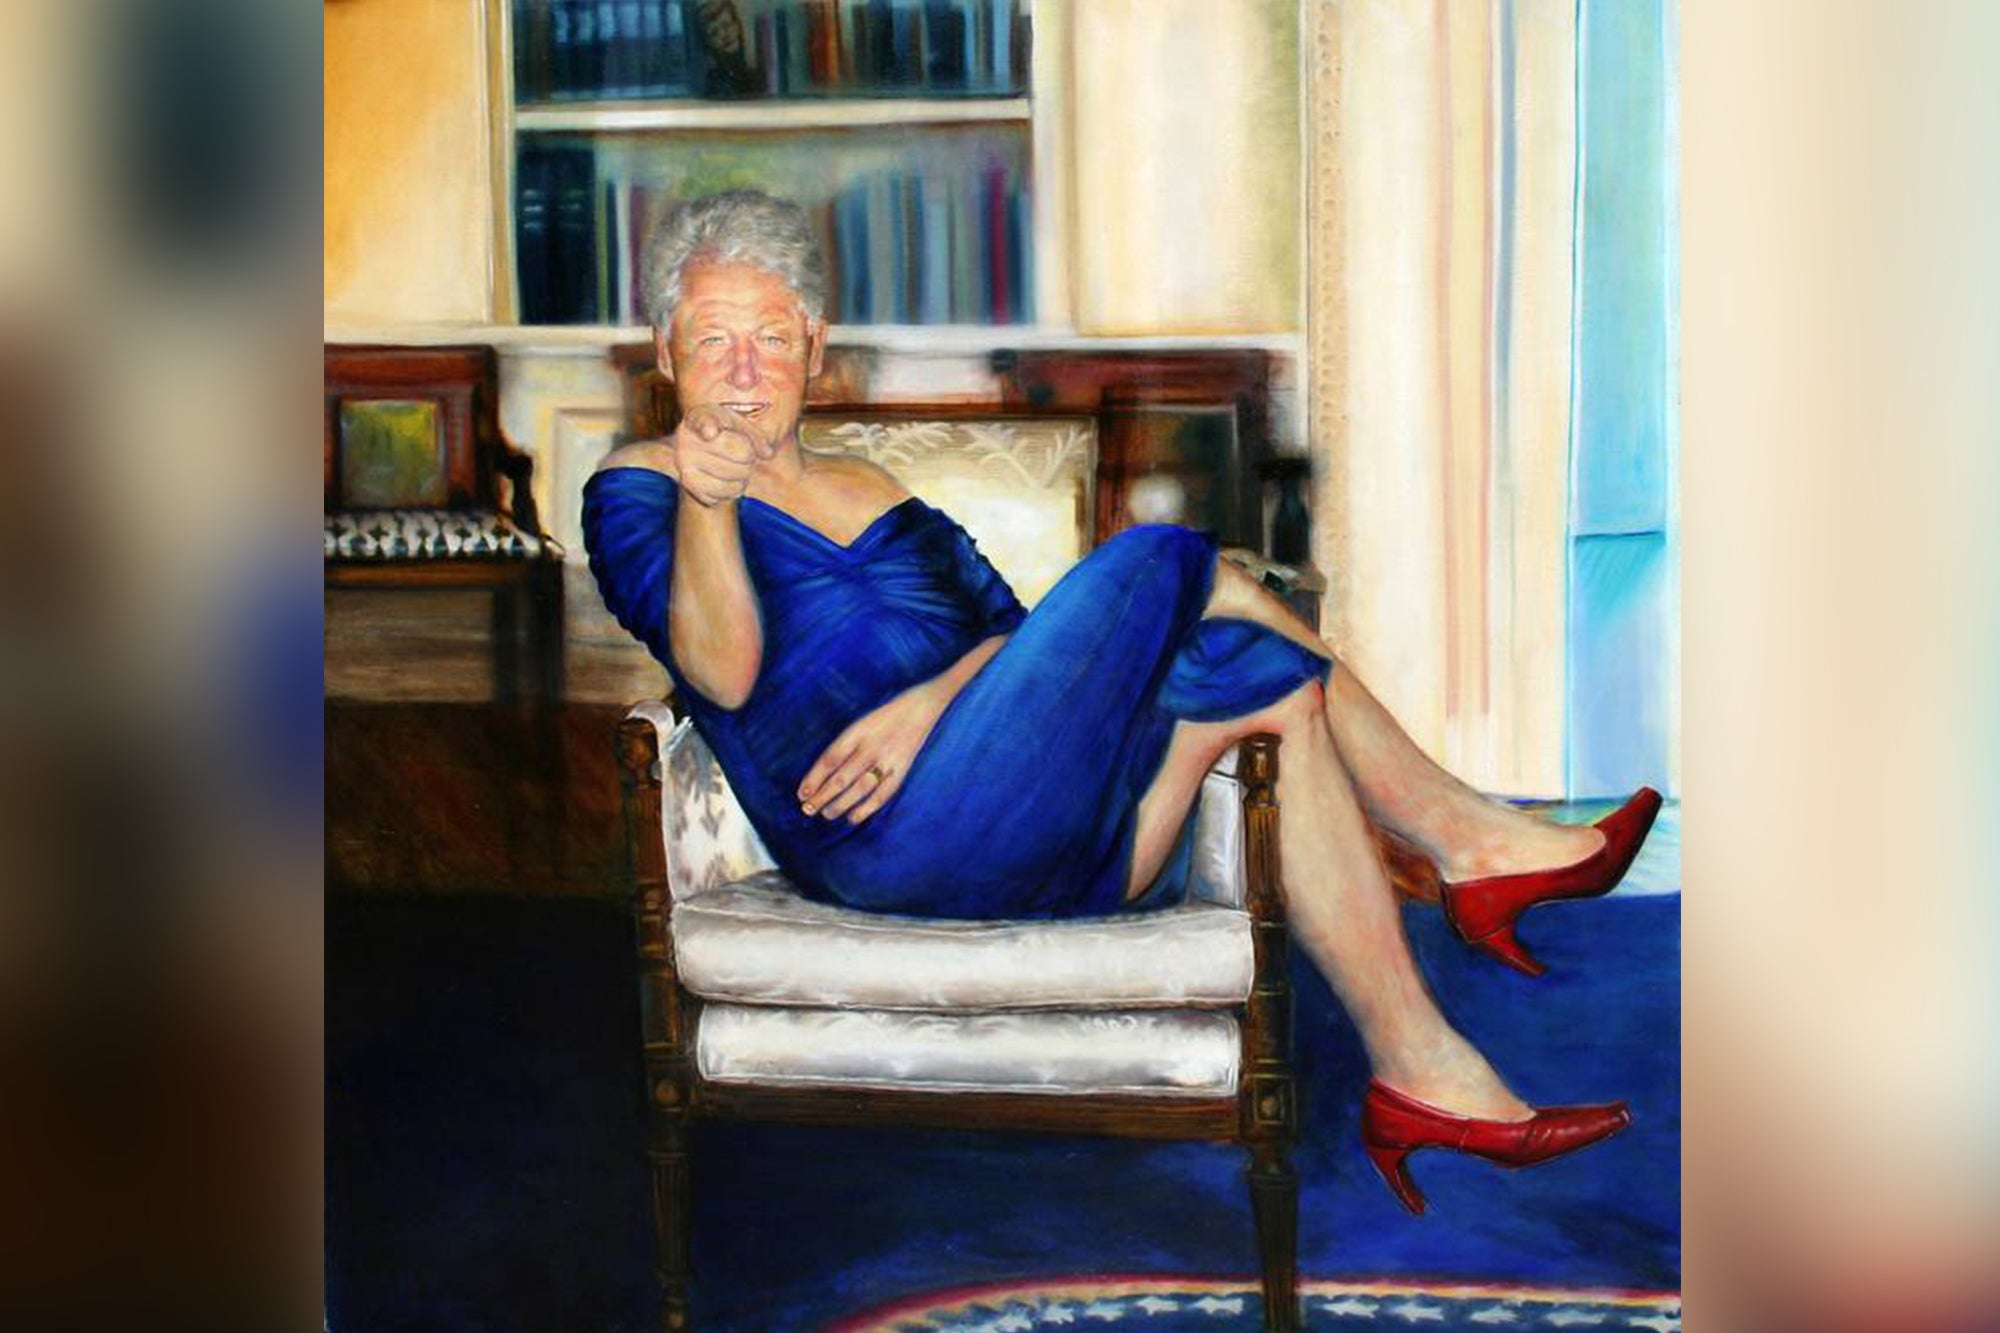 conspiracy about Bill Clinton in blue dress from a painting at Jeffrey Epstein's island